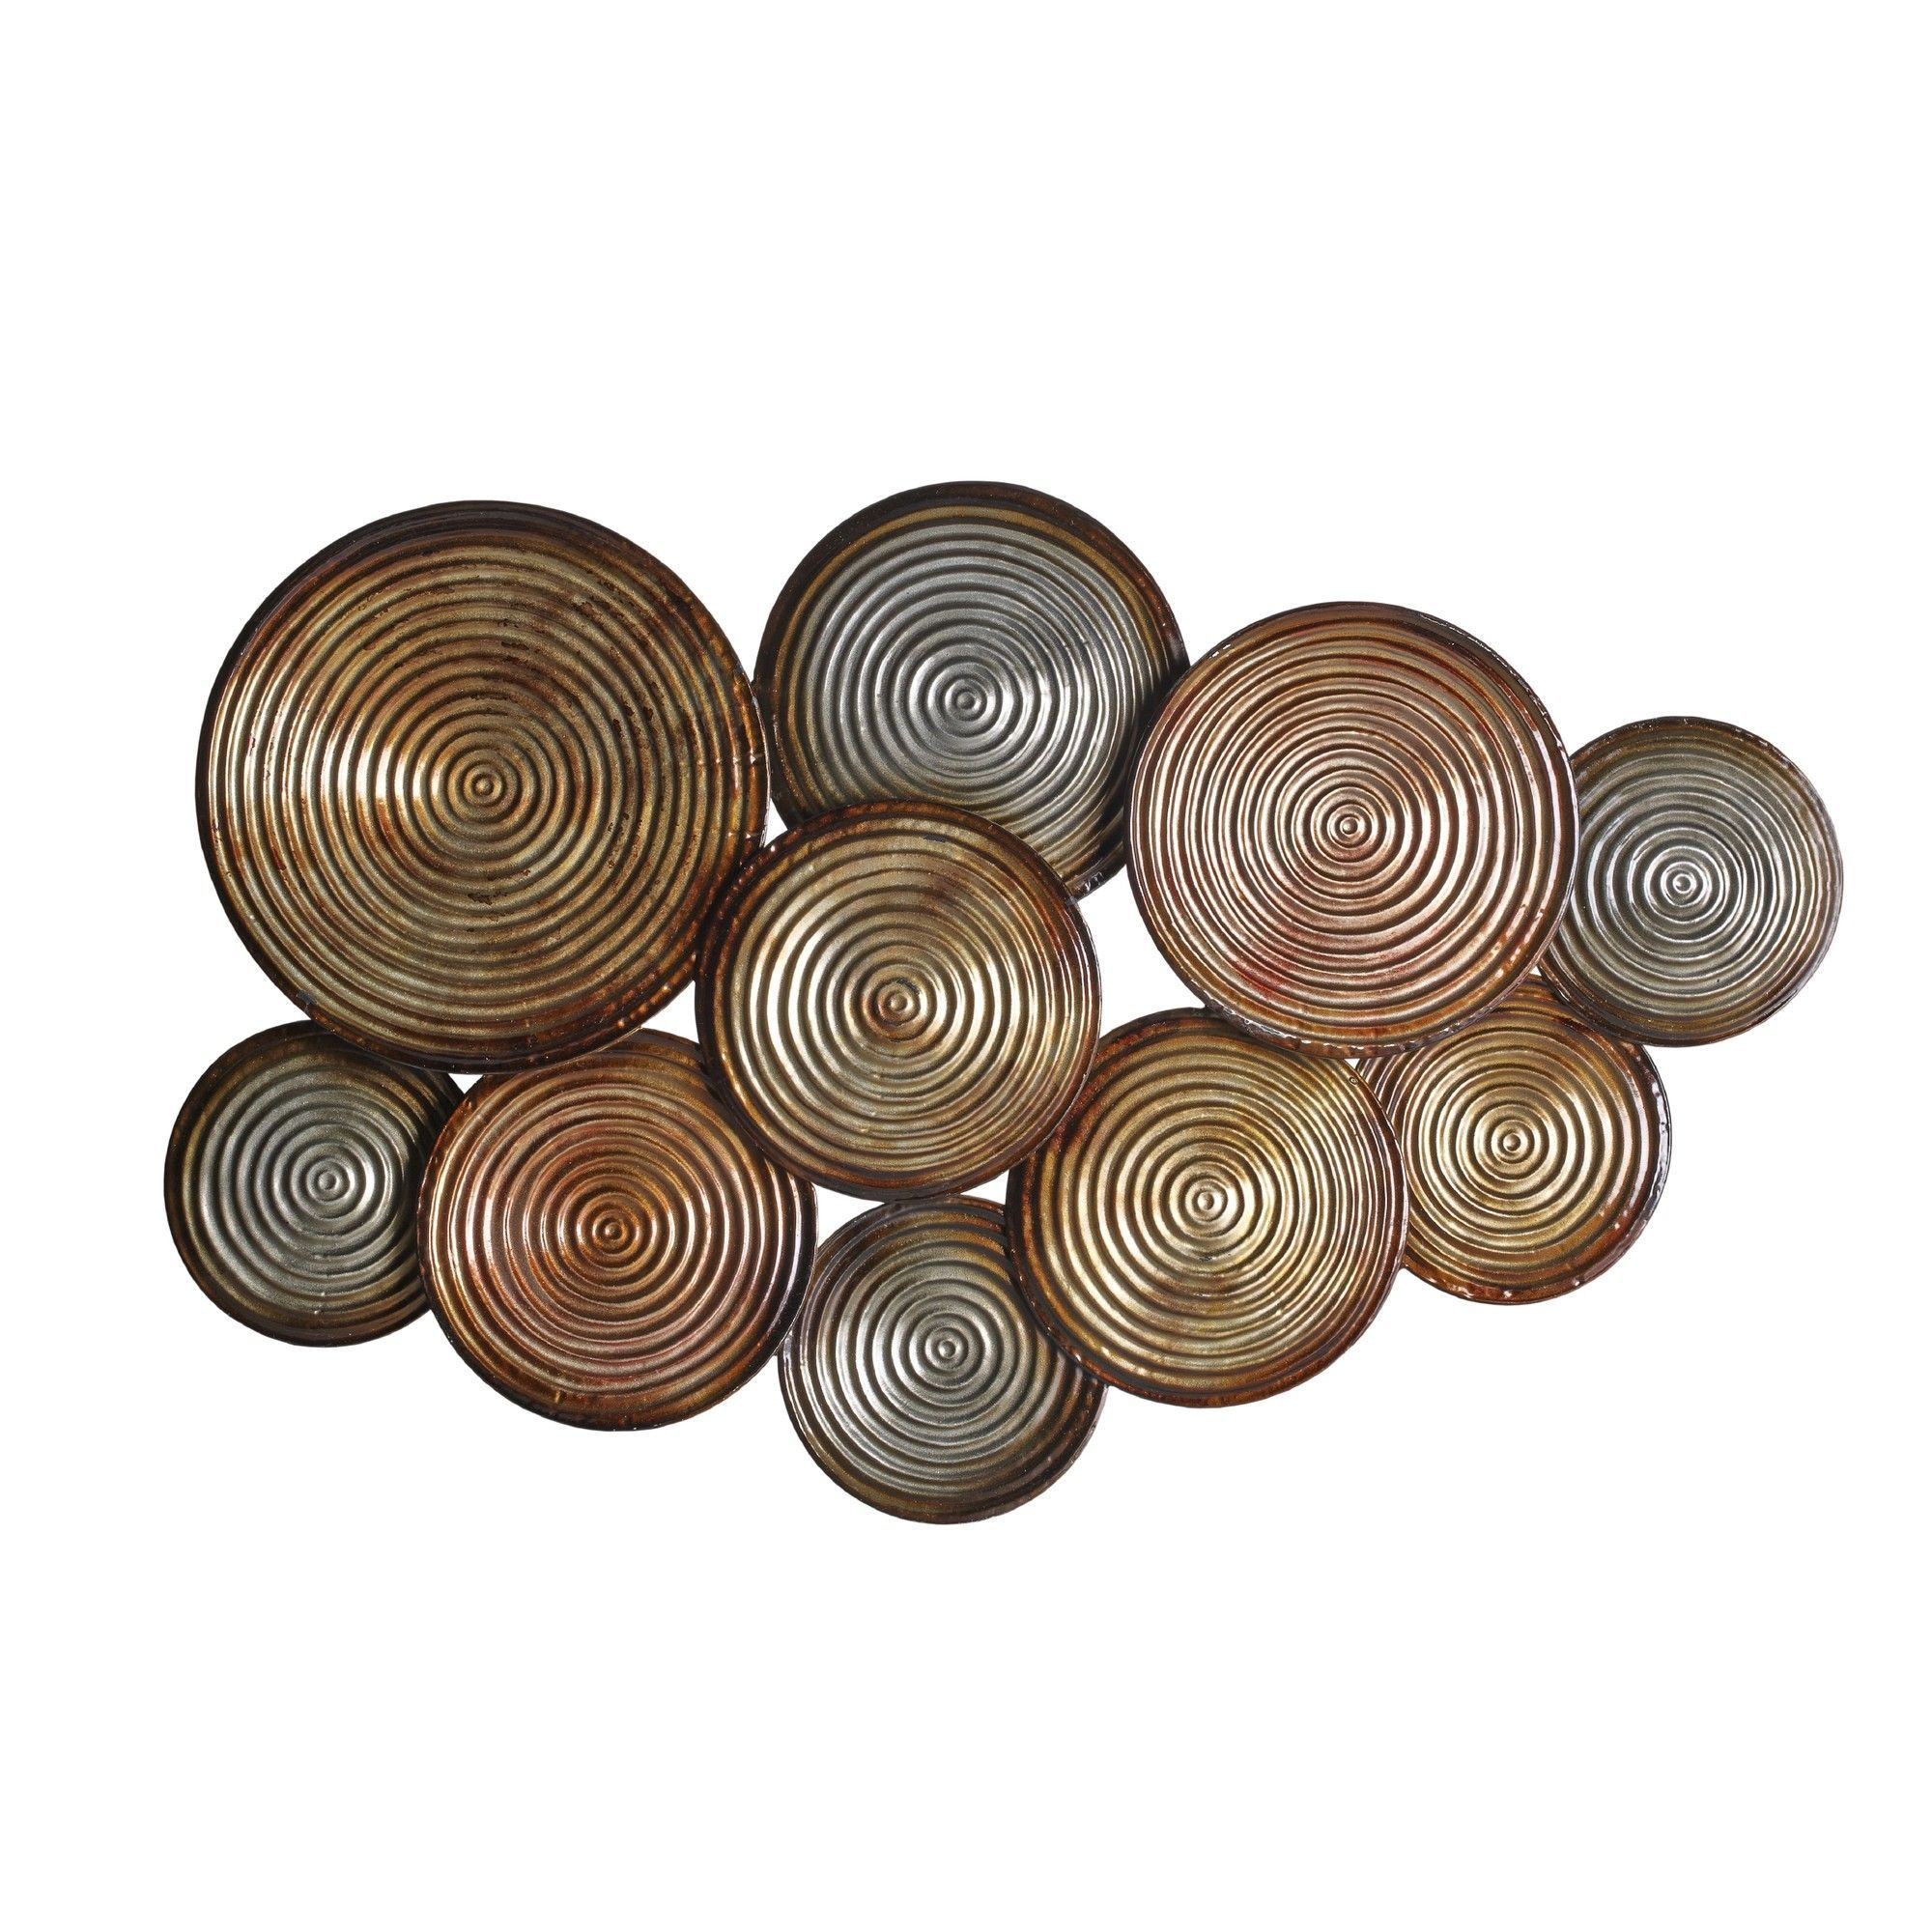 Brown Metal Wall Decor Embossed Circles Metal Wall Decor  Products  Pinterest  Metal